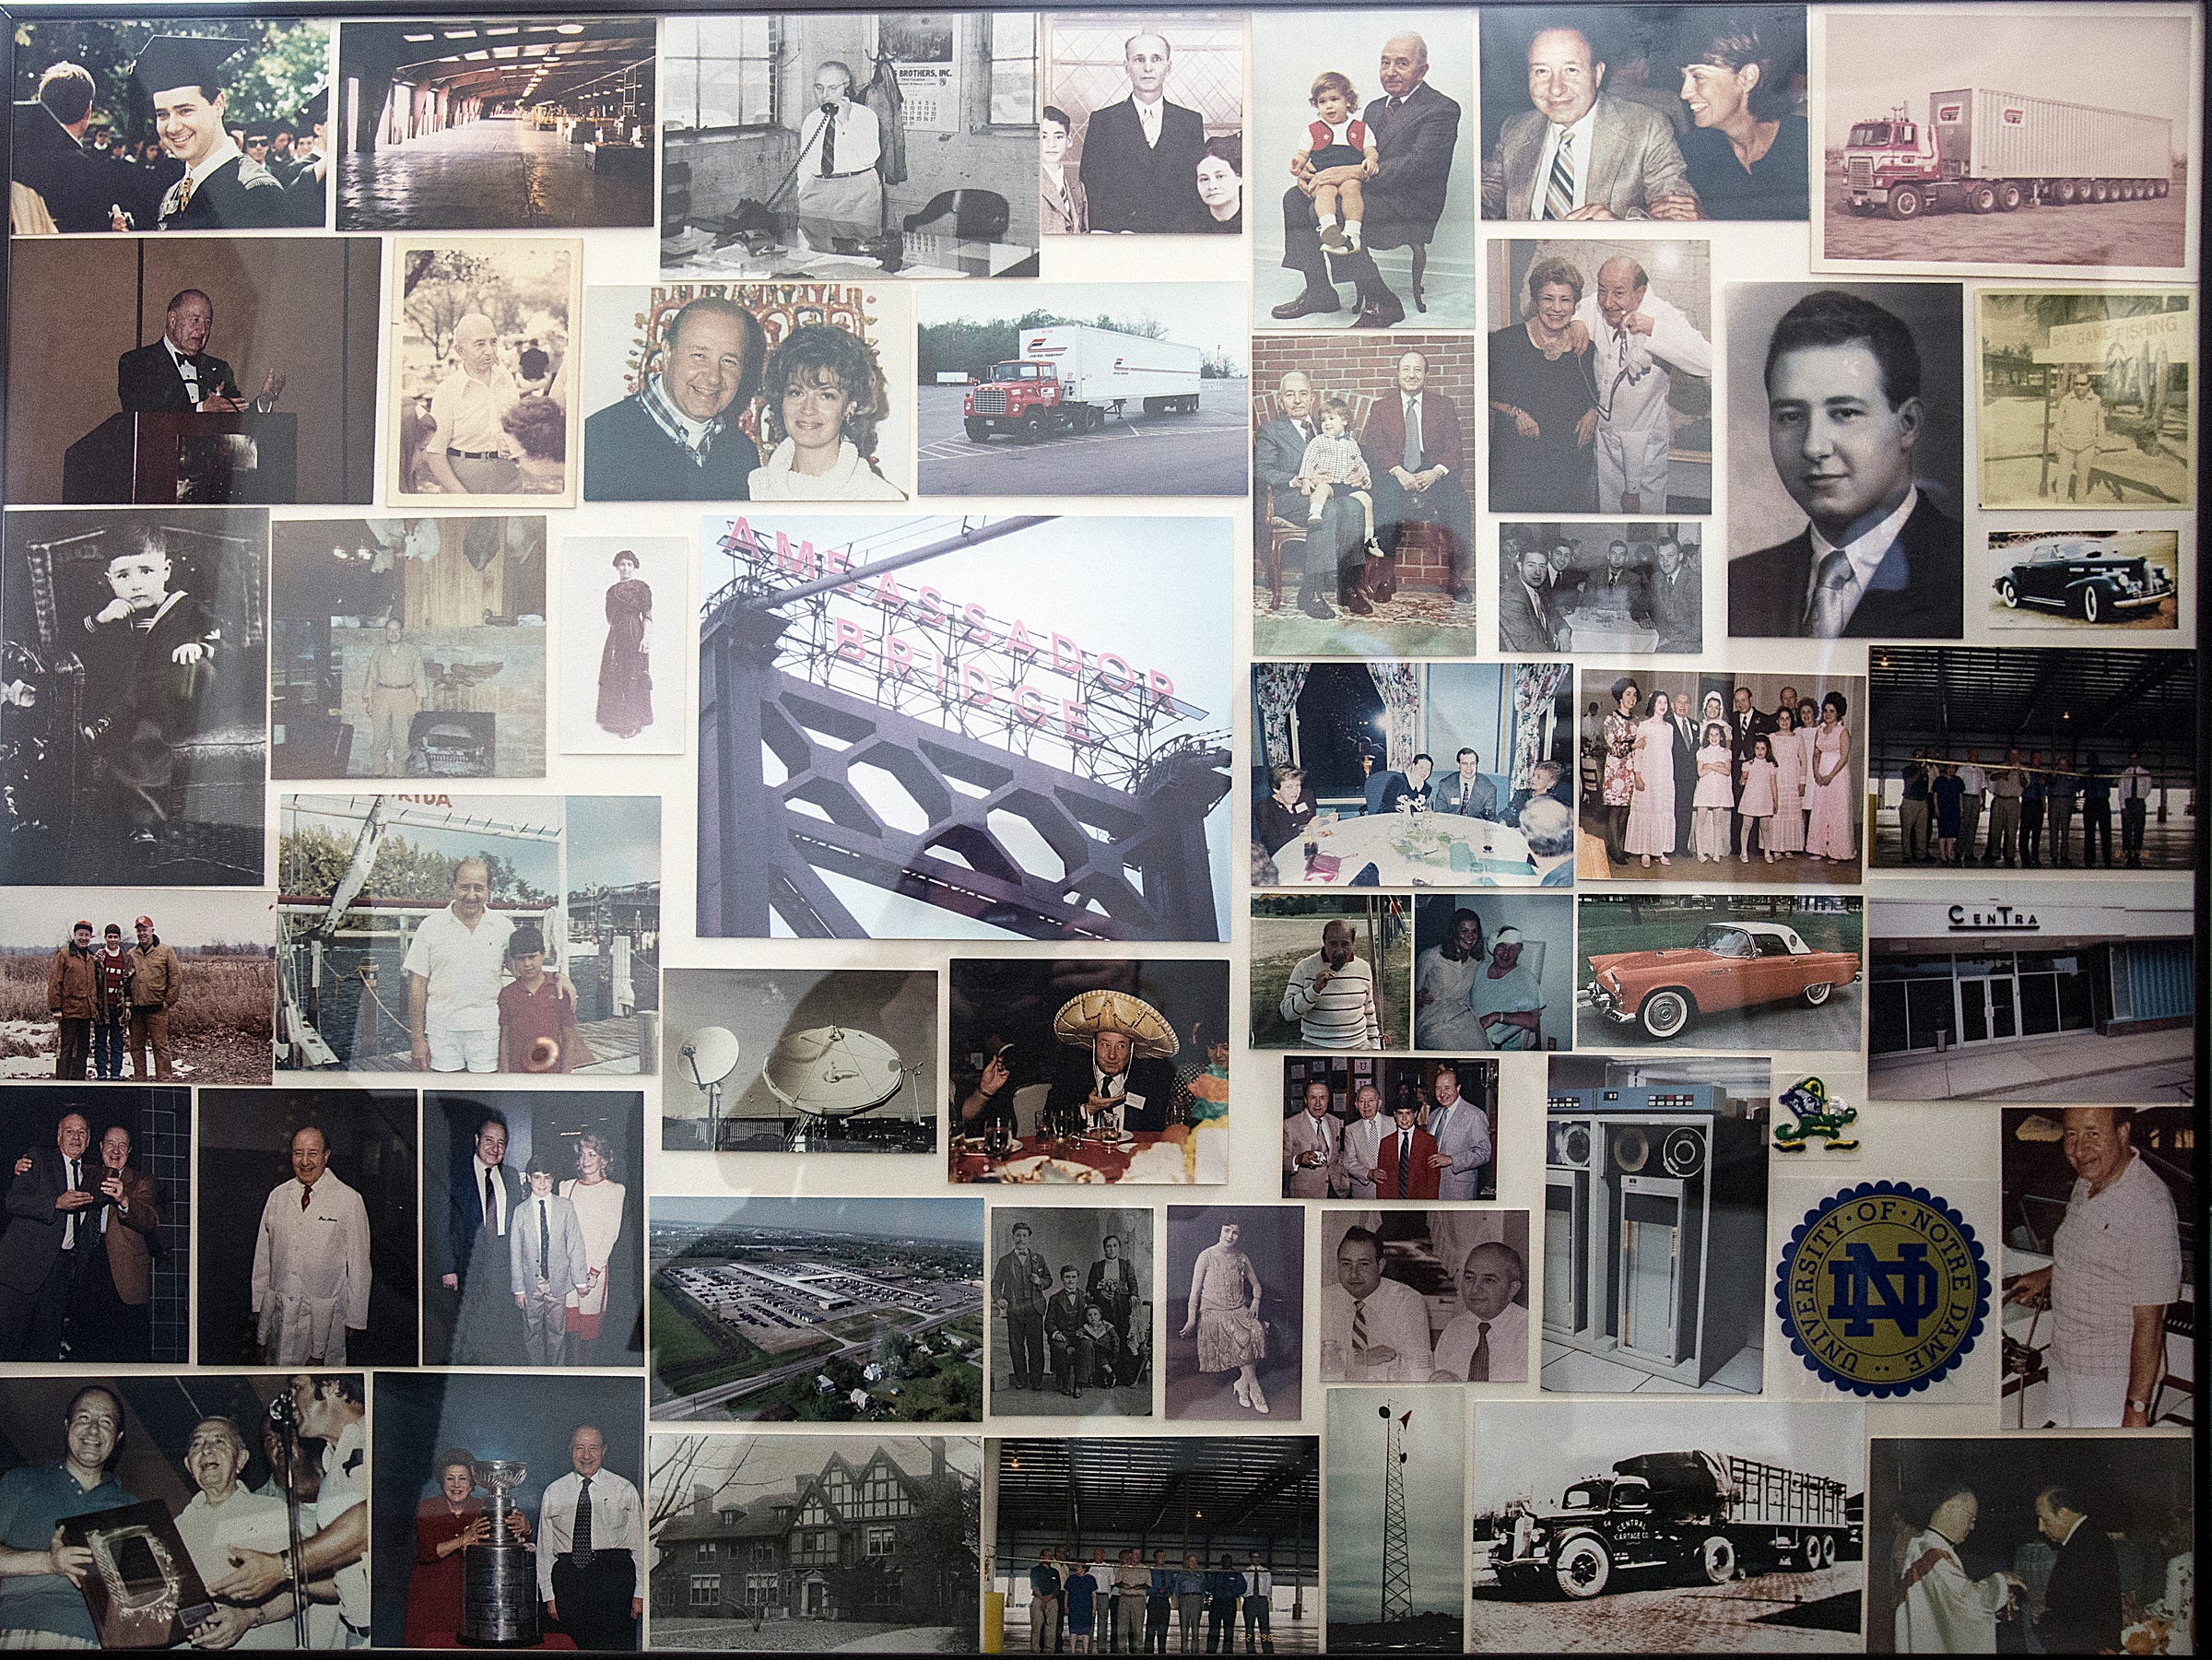 """Family photos of trucking magnate Manuel """"Matty"""" Moroun and son Matthew Moroun hang in a small room between their offices at Central Transport headquarters in Warren on Feb. 13, 2018."""